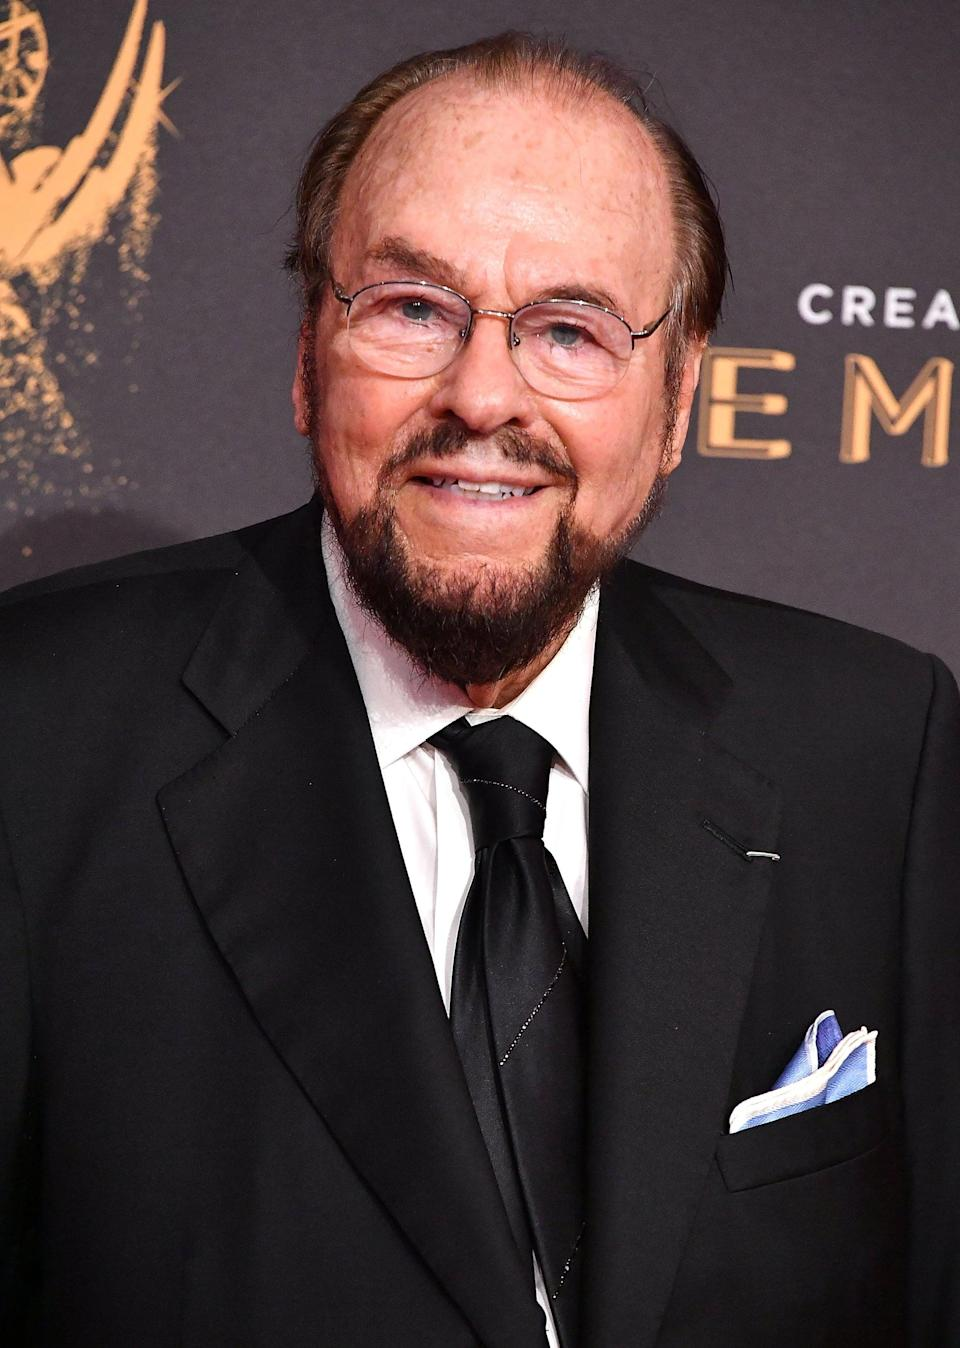 "<p>The longtime <b>Inside the Actor's Studio</b> host <a href=""https://www.hollywoodreporter.com/news/james-lipton-dead-actors-studio-909382"" class=""link rapid-noclick-resp"" rel=""nofollow noopener"" target=""_blank"" data-ylk=""slk:died at age 93"">died at age 93</a> in March after a battle with bladder cancer. </p>"